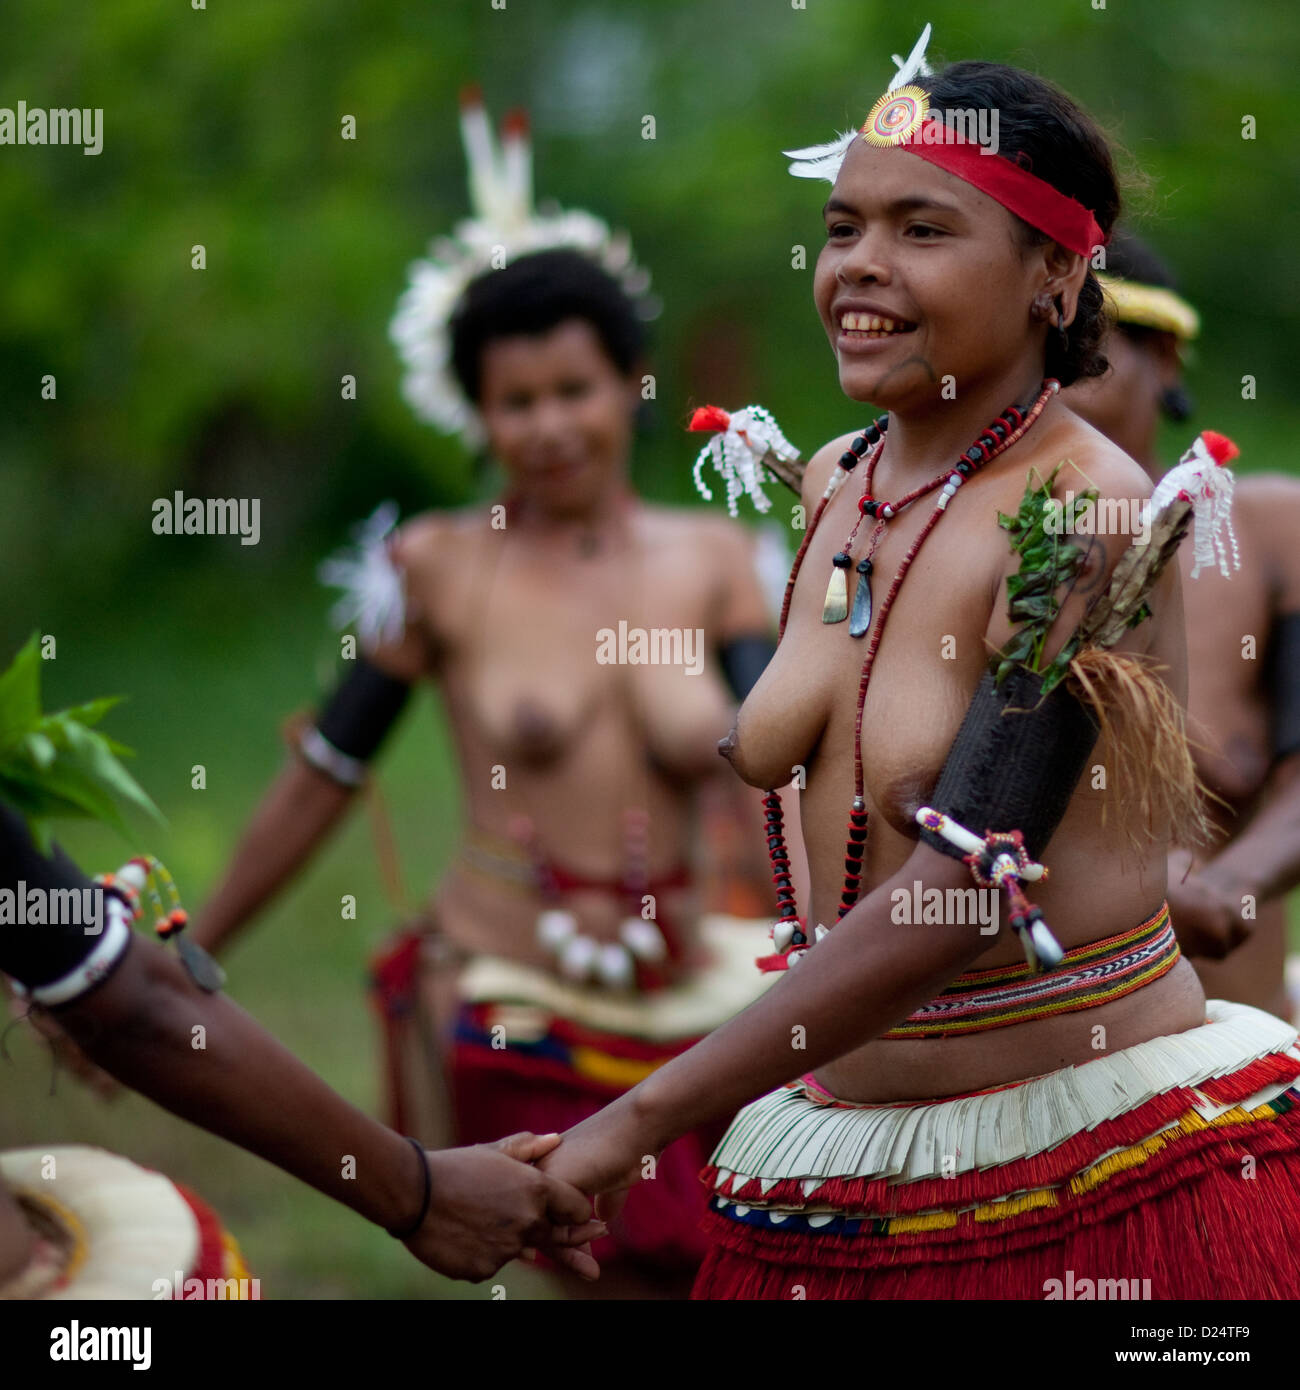 from Bodhi naked girls papua new guinea